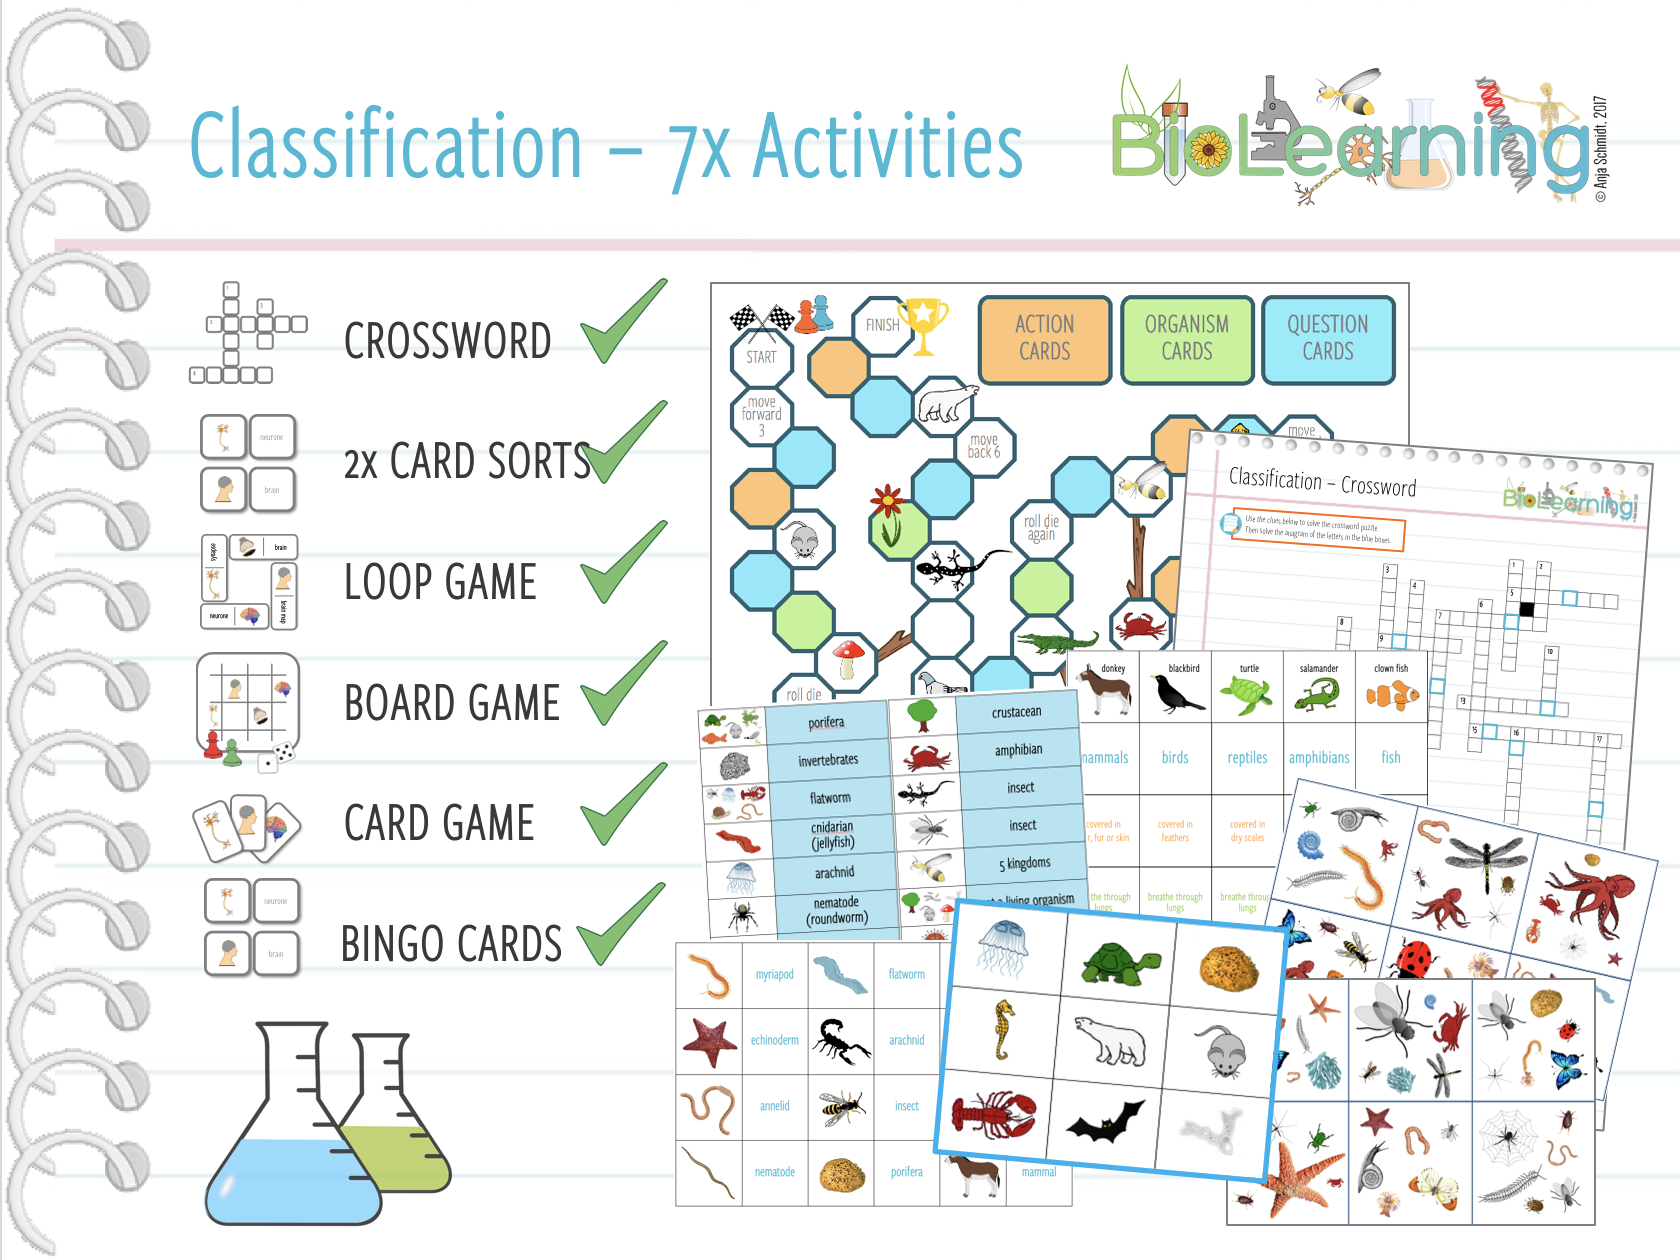 Classification - 7x Activities and Games